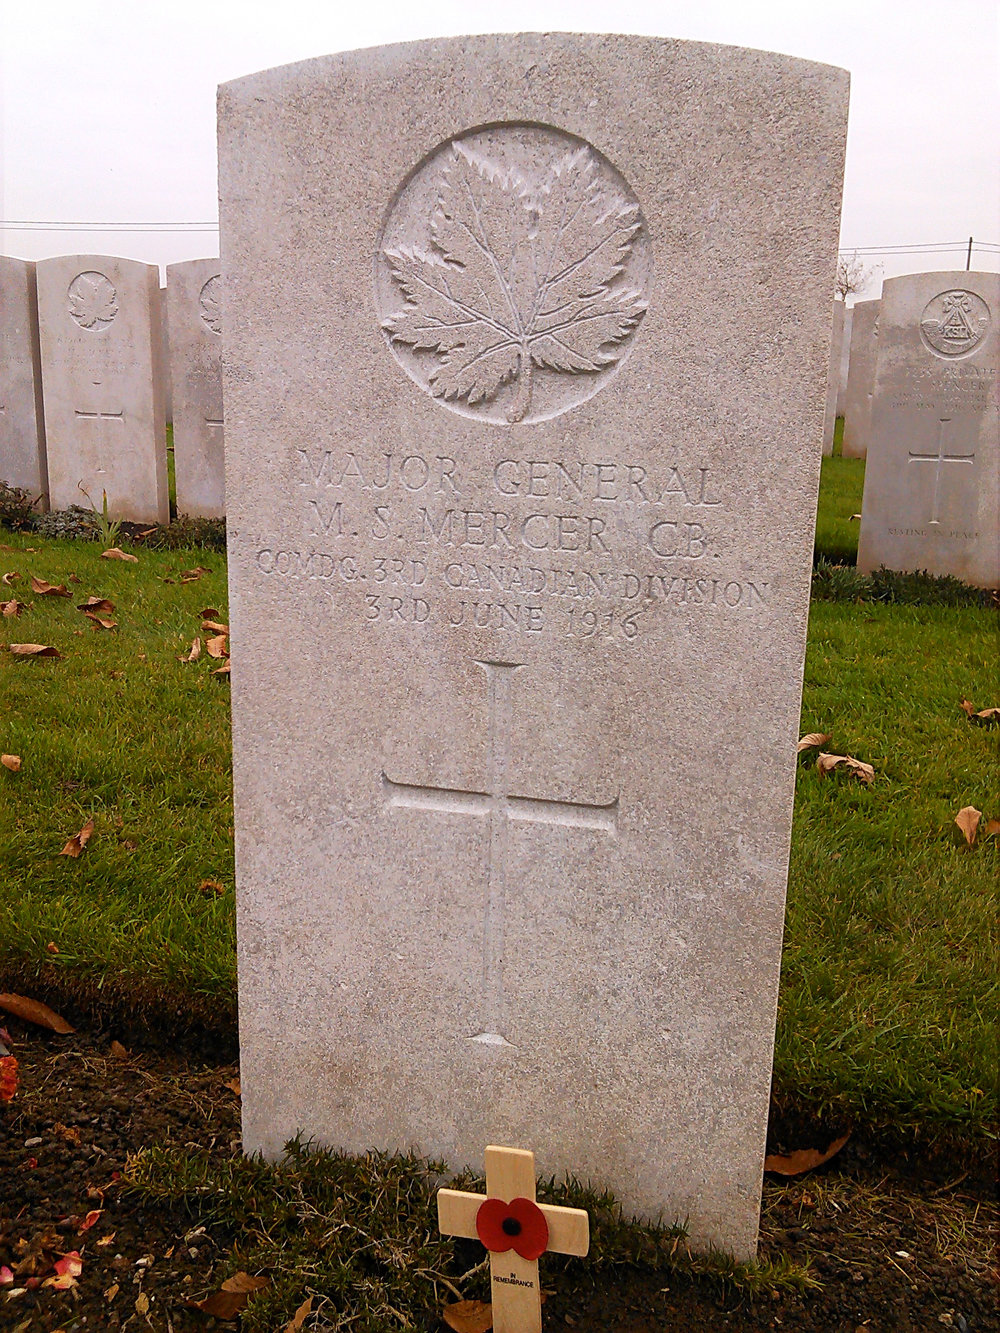 The headstone of Major-General Malcolm Smith Mercer, the highest-ranking Canadian officer killed in action during the First World War, in Lijssenthoek. A farmer who became a lawyer before the war, Mercer enlisted in the Queen's Own Rifles of the Non-Permanent Active Militia in the late 1880s. After the call to arms, Mercer was given command of the 1st Canadian Infantry Brigade of the Canadian Expeditionary Force. On December 4, 1915 Mercer was named General Officer Commanding 3rd Division. At age 59, Mercer was killed on June 3, 1916 during a British artillery bombardment to prevent the Germans from bringing up reinforcements at Mount Sorrel.